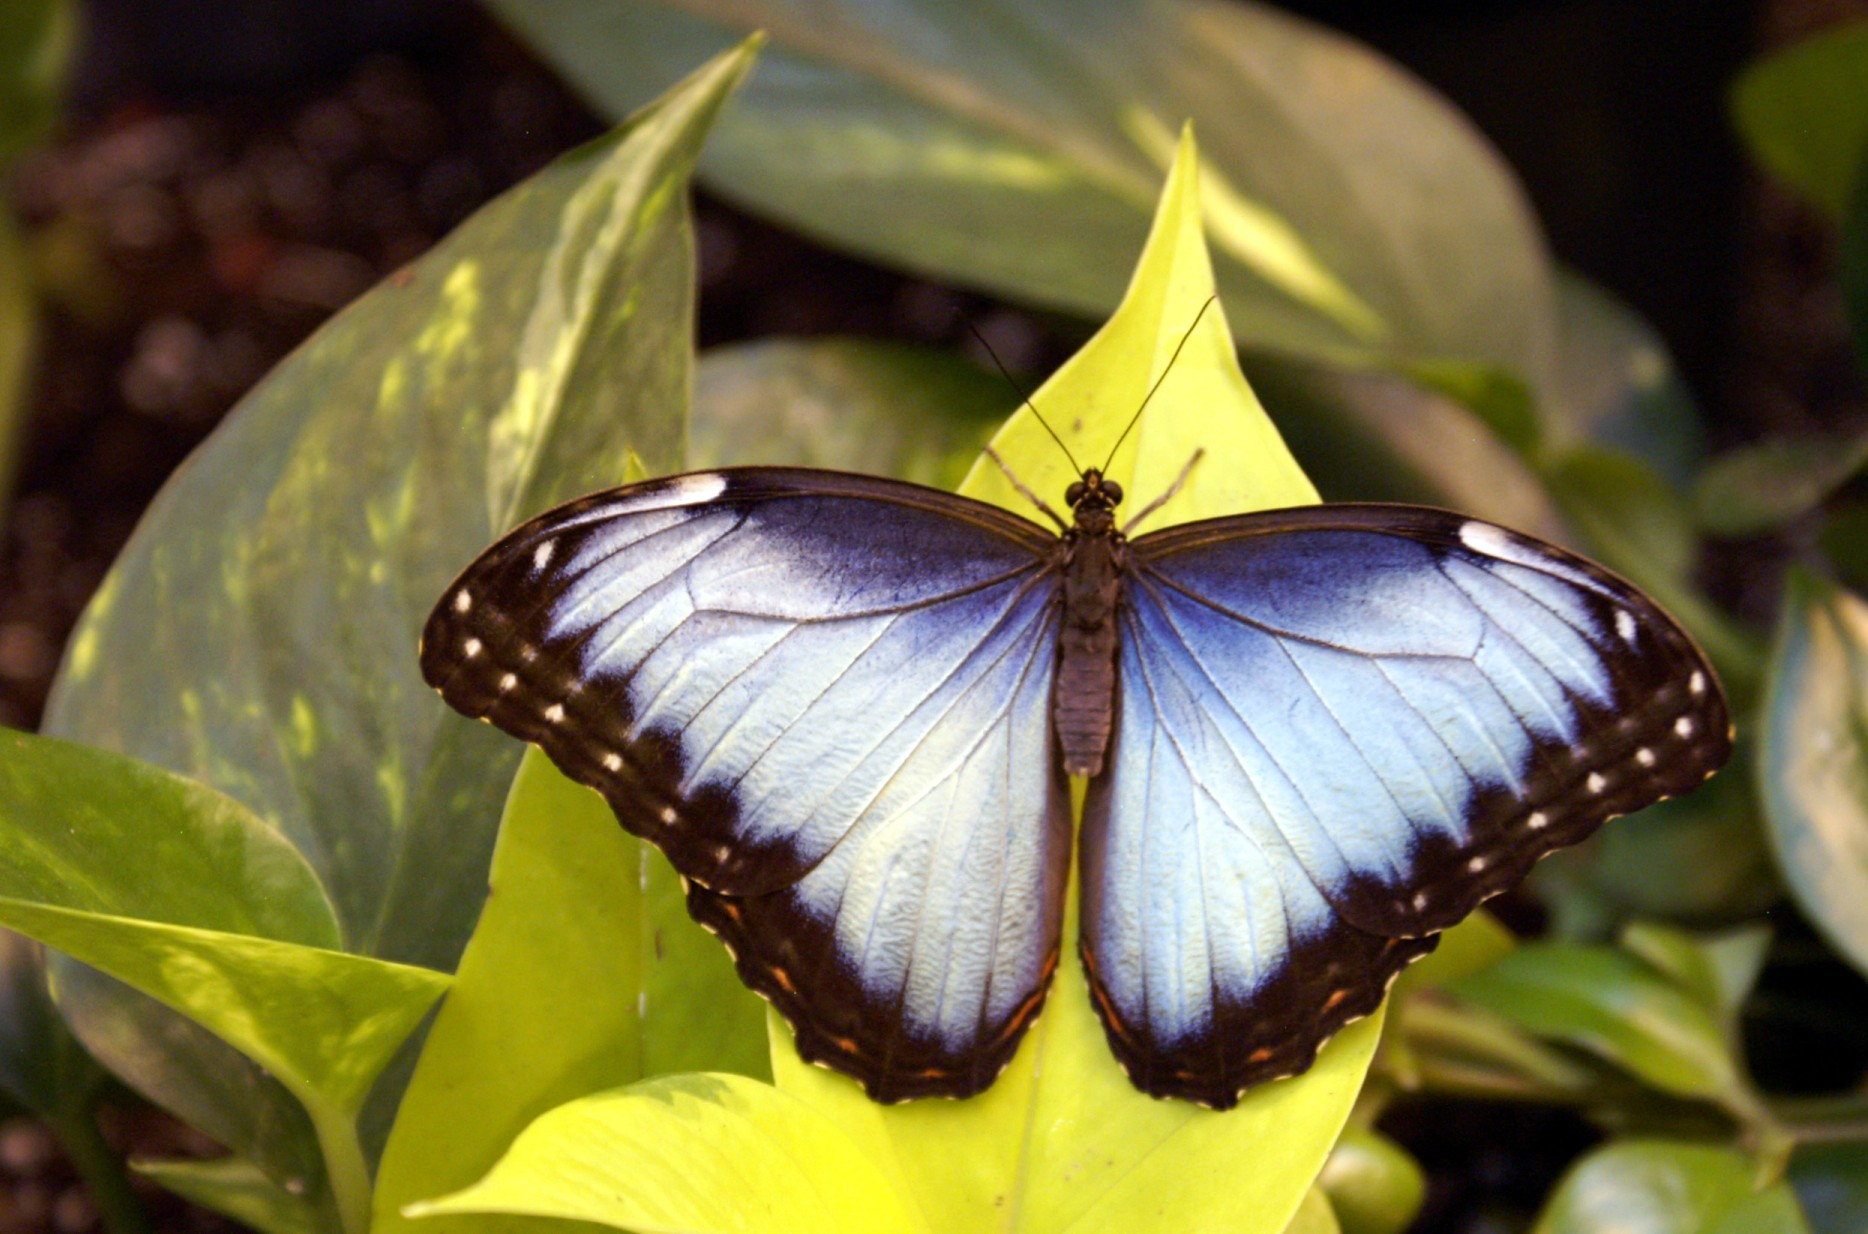 external image commonbluemorpho%281%29.jpg